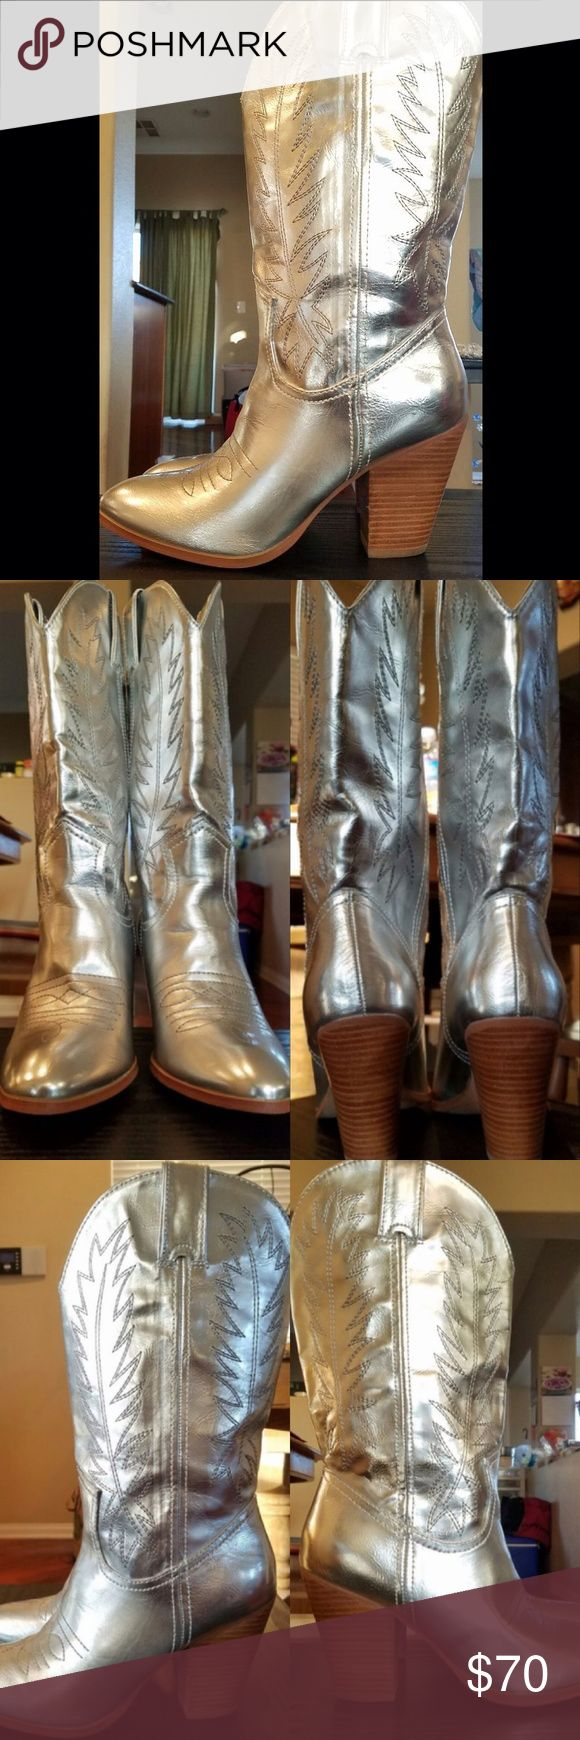 "✨ Make offer ✨ | Silver Metallic Cowboy Boots  Authentic Miranda by Miranda Lambert metallic silver cowboy boots. Slightly used. Size 8M. Faux leather. 10 1/2"" shaft height. 14"" leg opening. Almond toe. Paisley print fabric lining. 3 1/4"" stacked block heel. Rarely used. Like new condition. Look at all photos carefully, I do not accept returns. If you have questions, please let me know! Will look at all offers and accept the best one at the end of the week. No shoe box included. Same / next…"